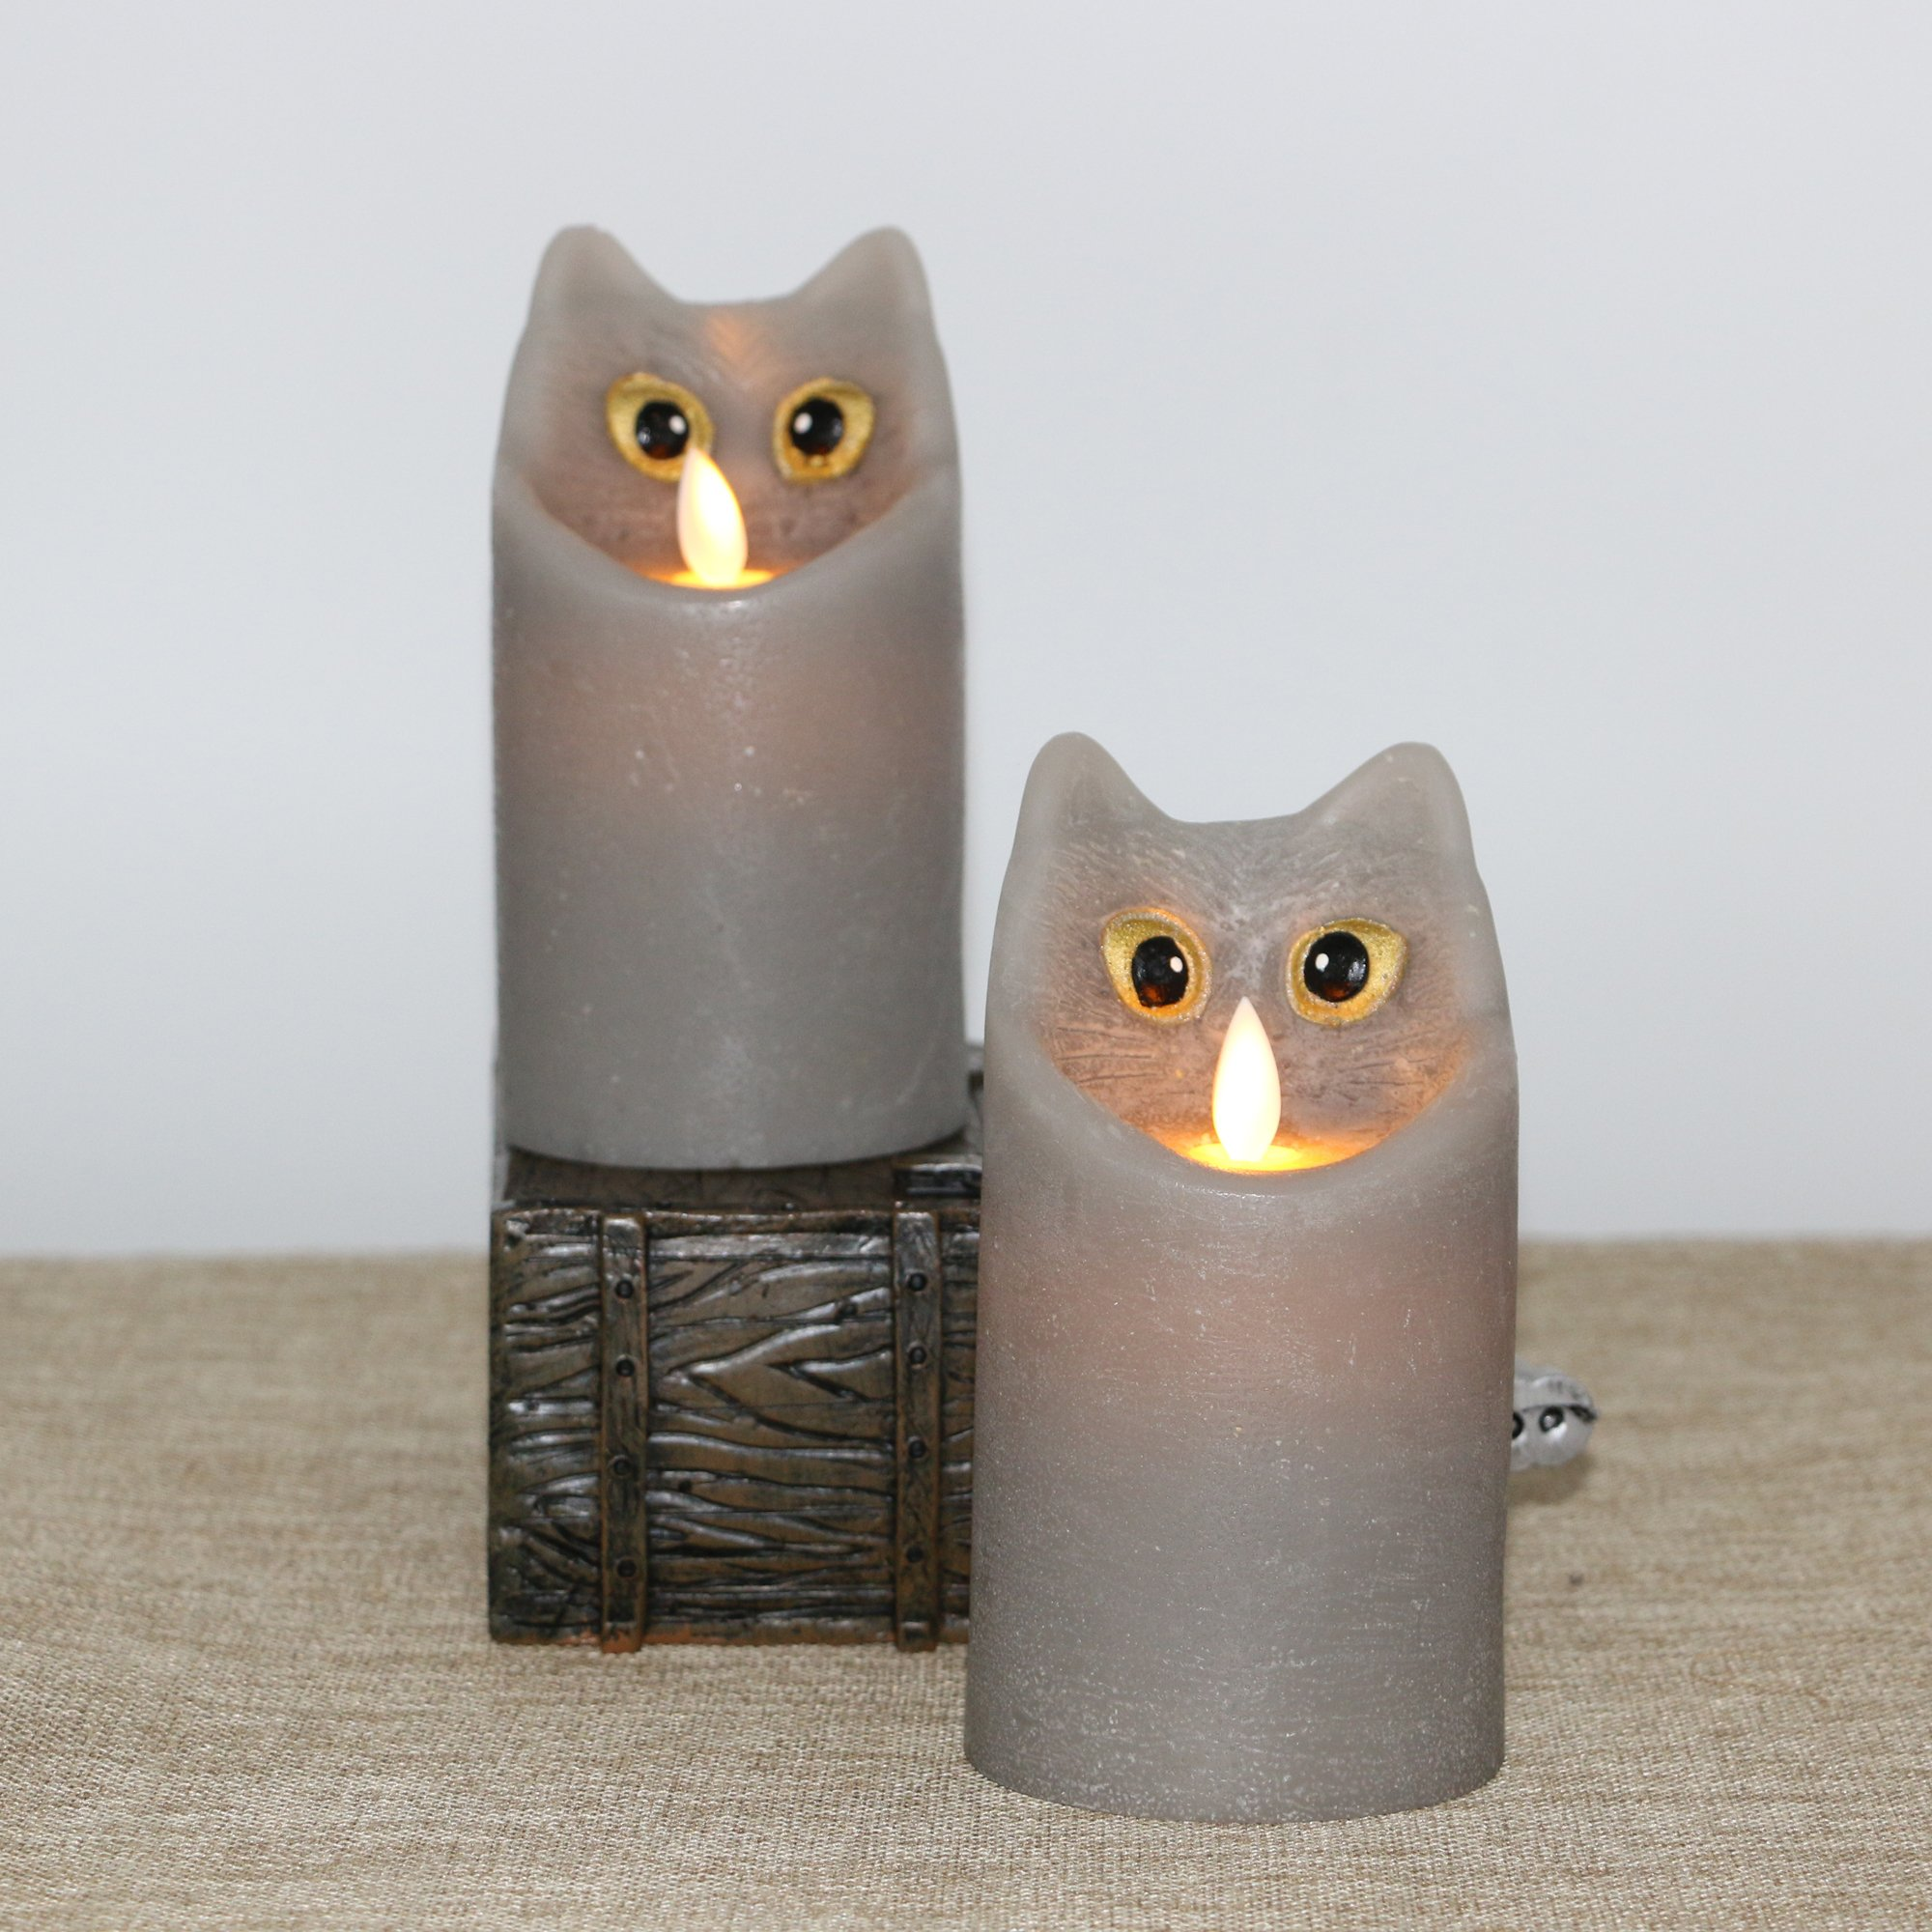 Kitch Aroma Marble Grey Color Cartoon Cat Flameless Candle with Timer For Birthday Gifts,Dia 3'' x H6'',Pack of 2 by Kitch Aroma (Image #3)